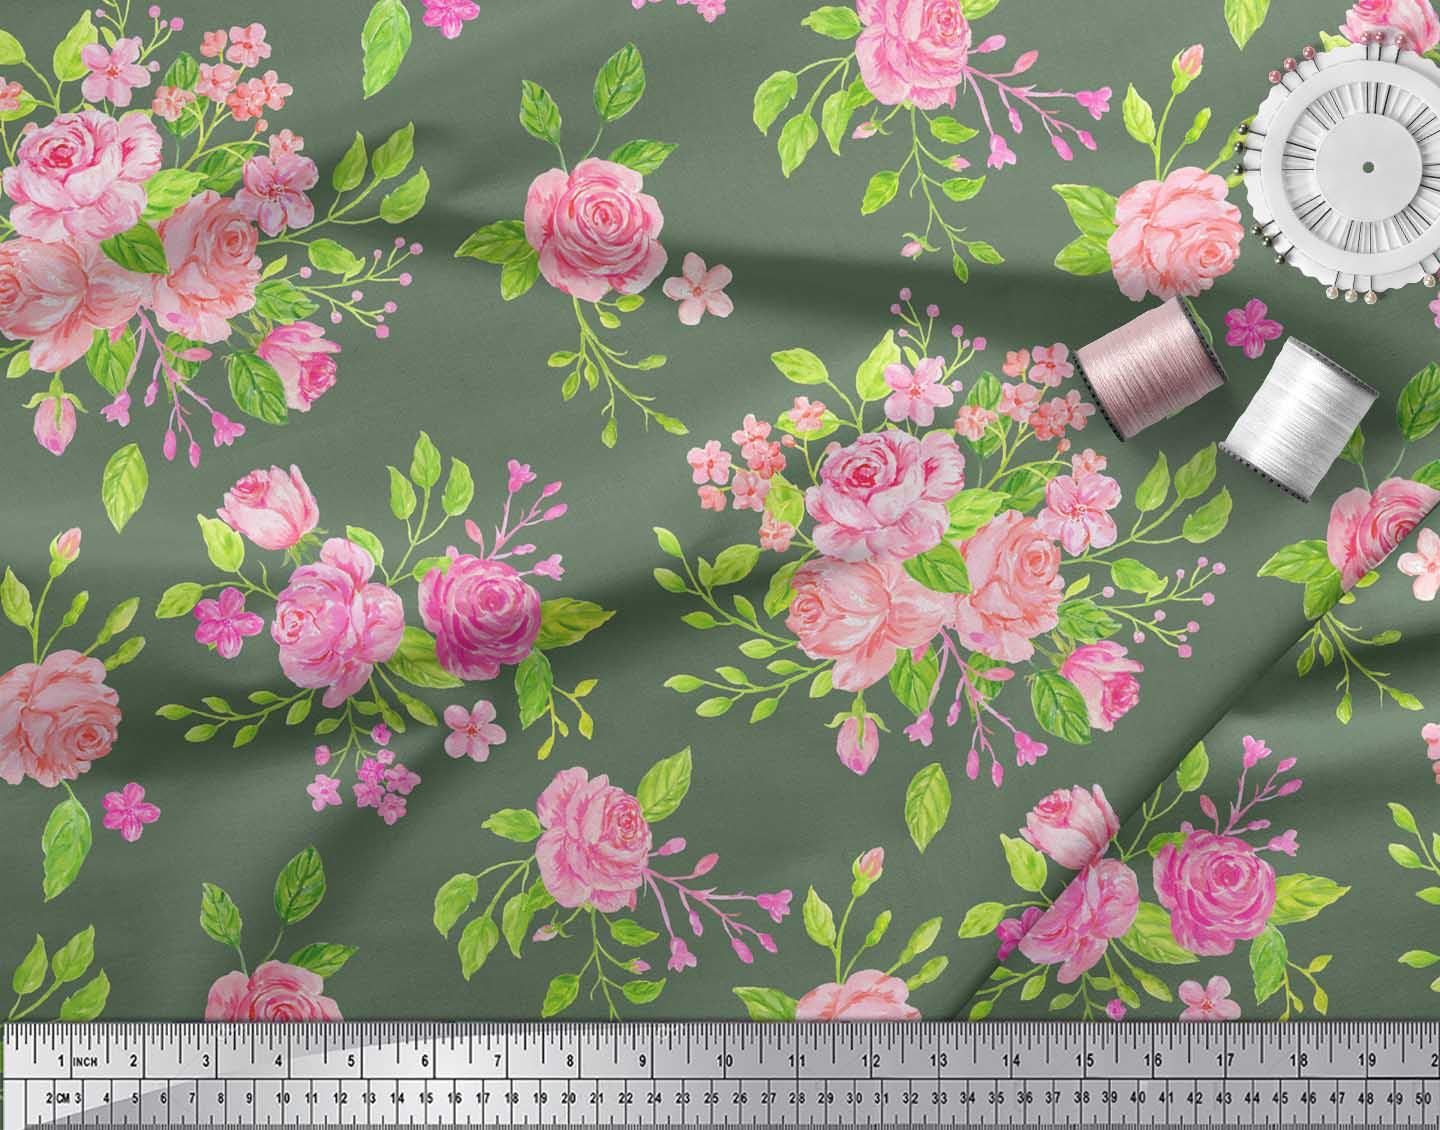 Soimoi-Green-Cotton-Poplin-Fabric-Rose-Floral-Print-Fabric-by-metre-bim thumbnail 3